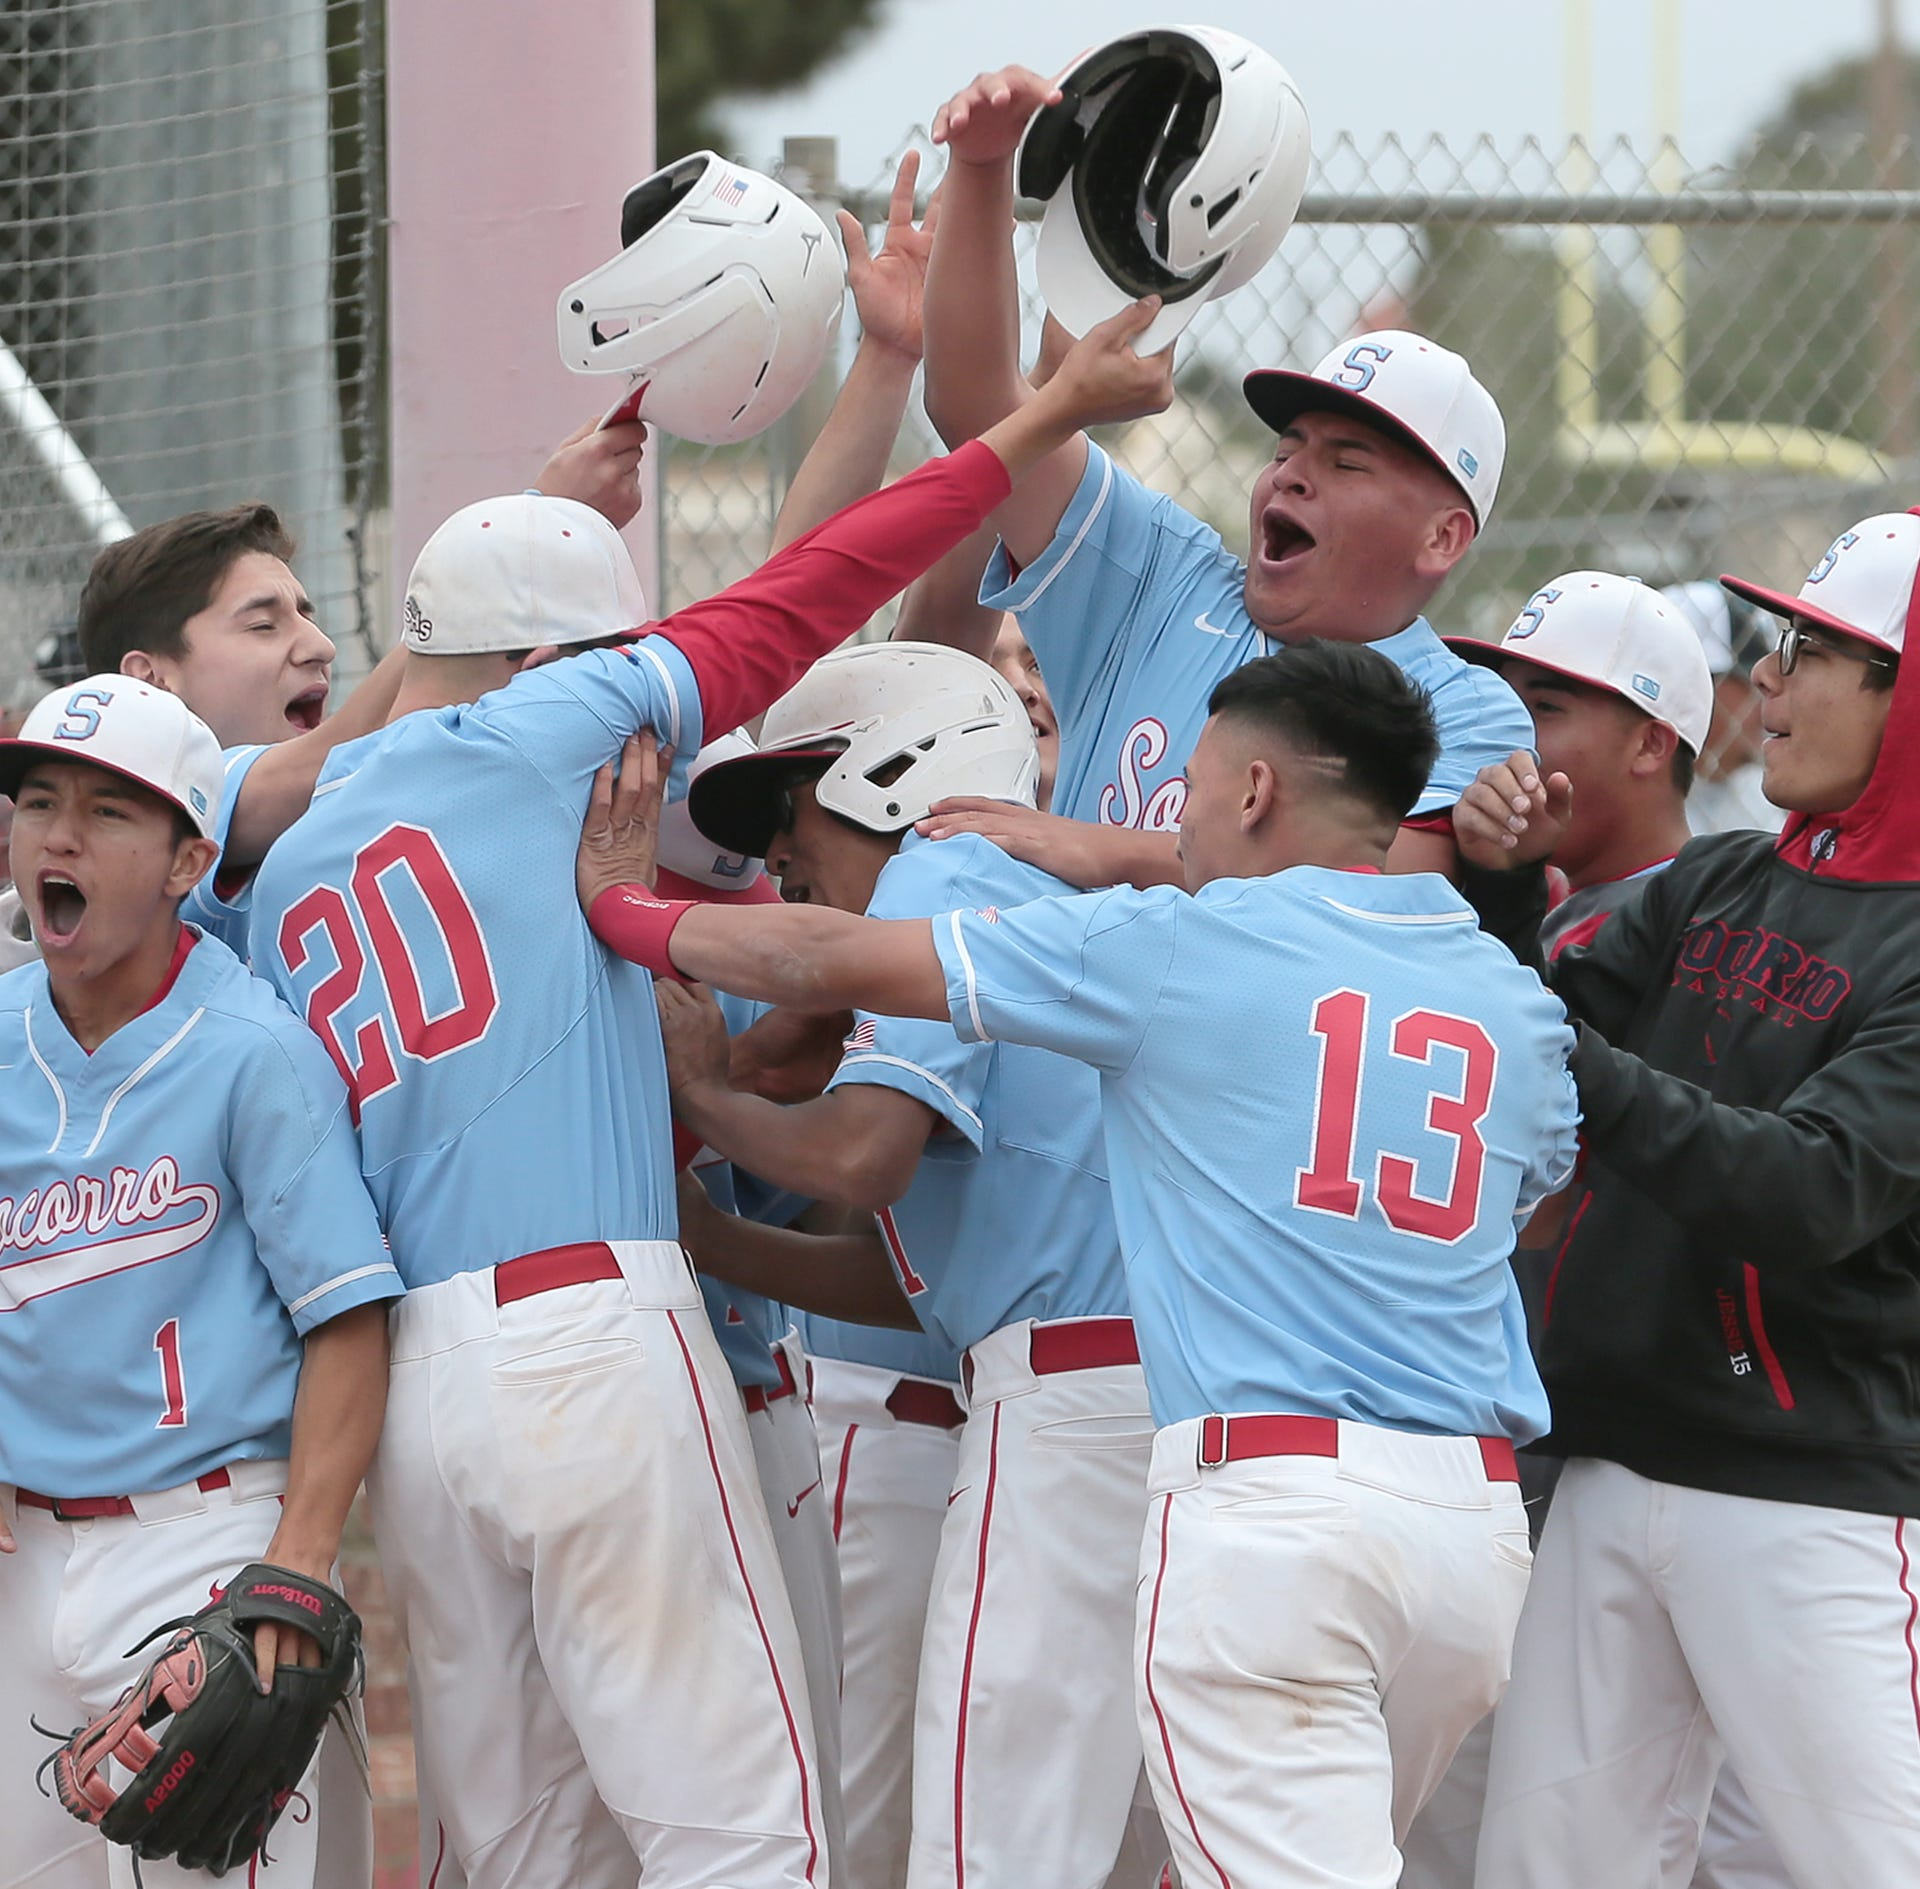 Socorro defeated Franklin Friday afternoon at Socorro High School 7-4.